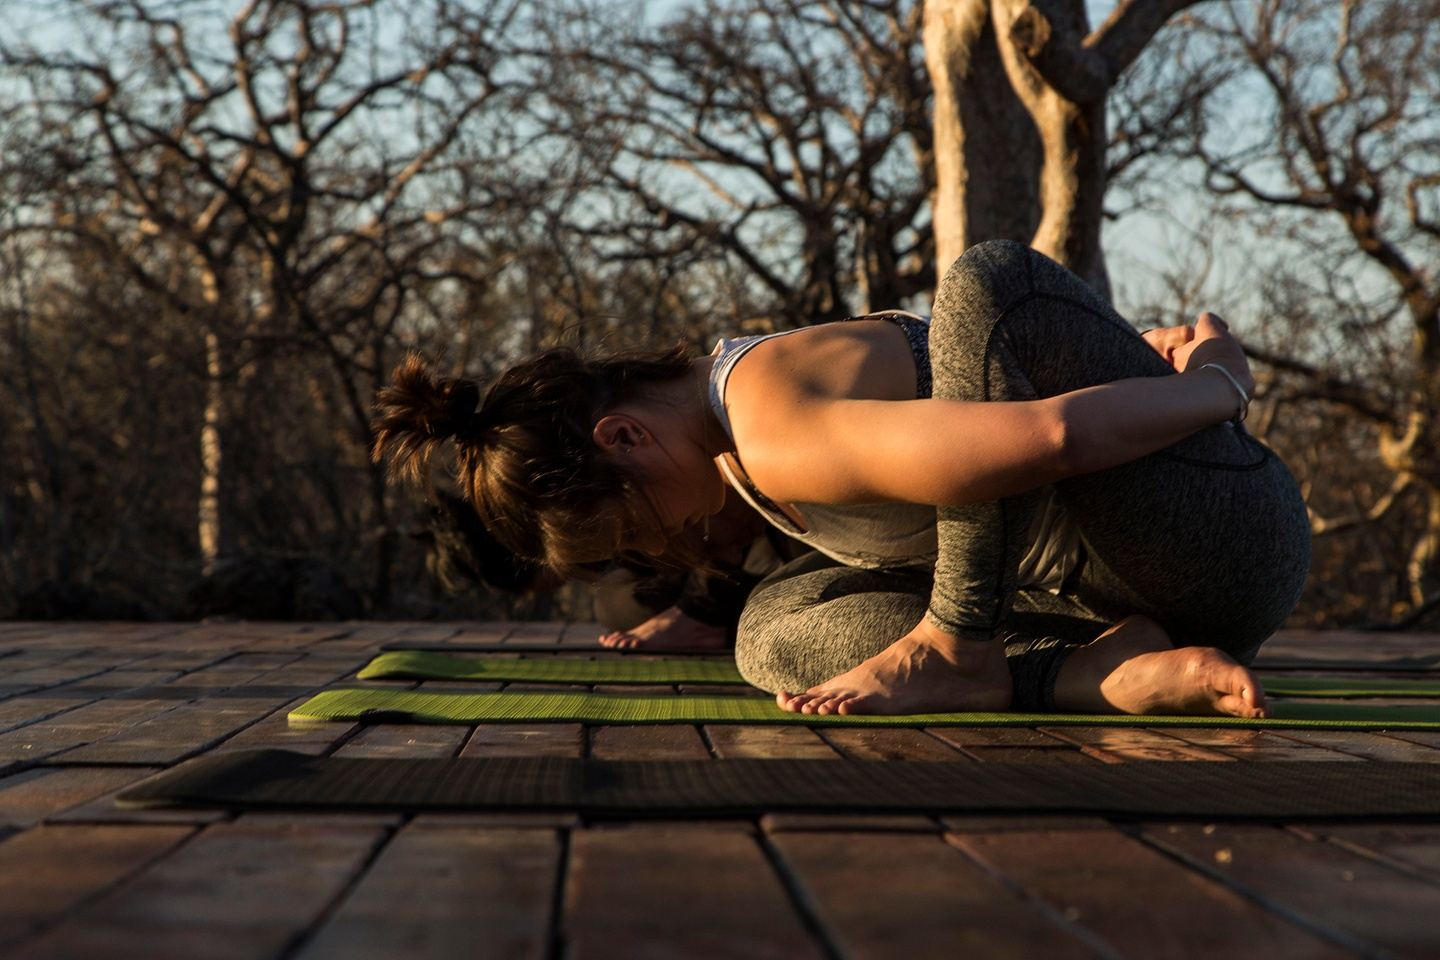 10 Day Yoga Adventure -Namibia, Africa - OCTOBER 2022